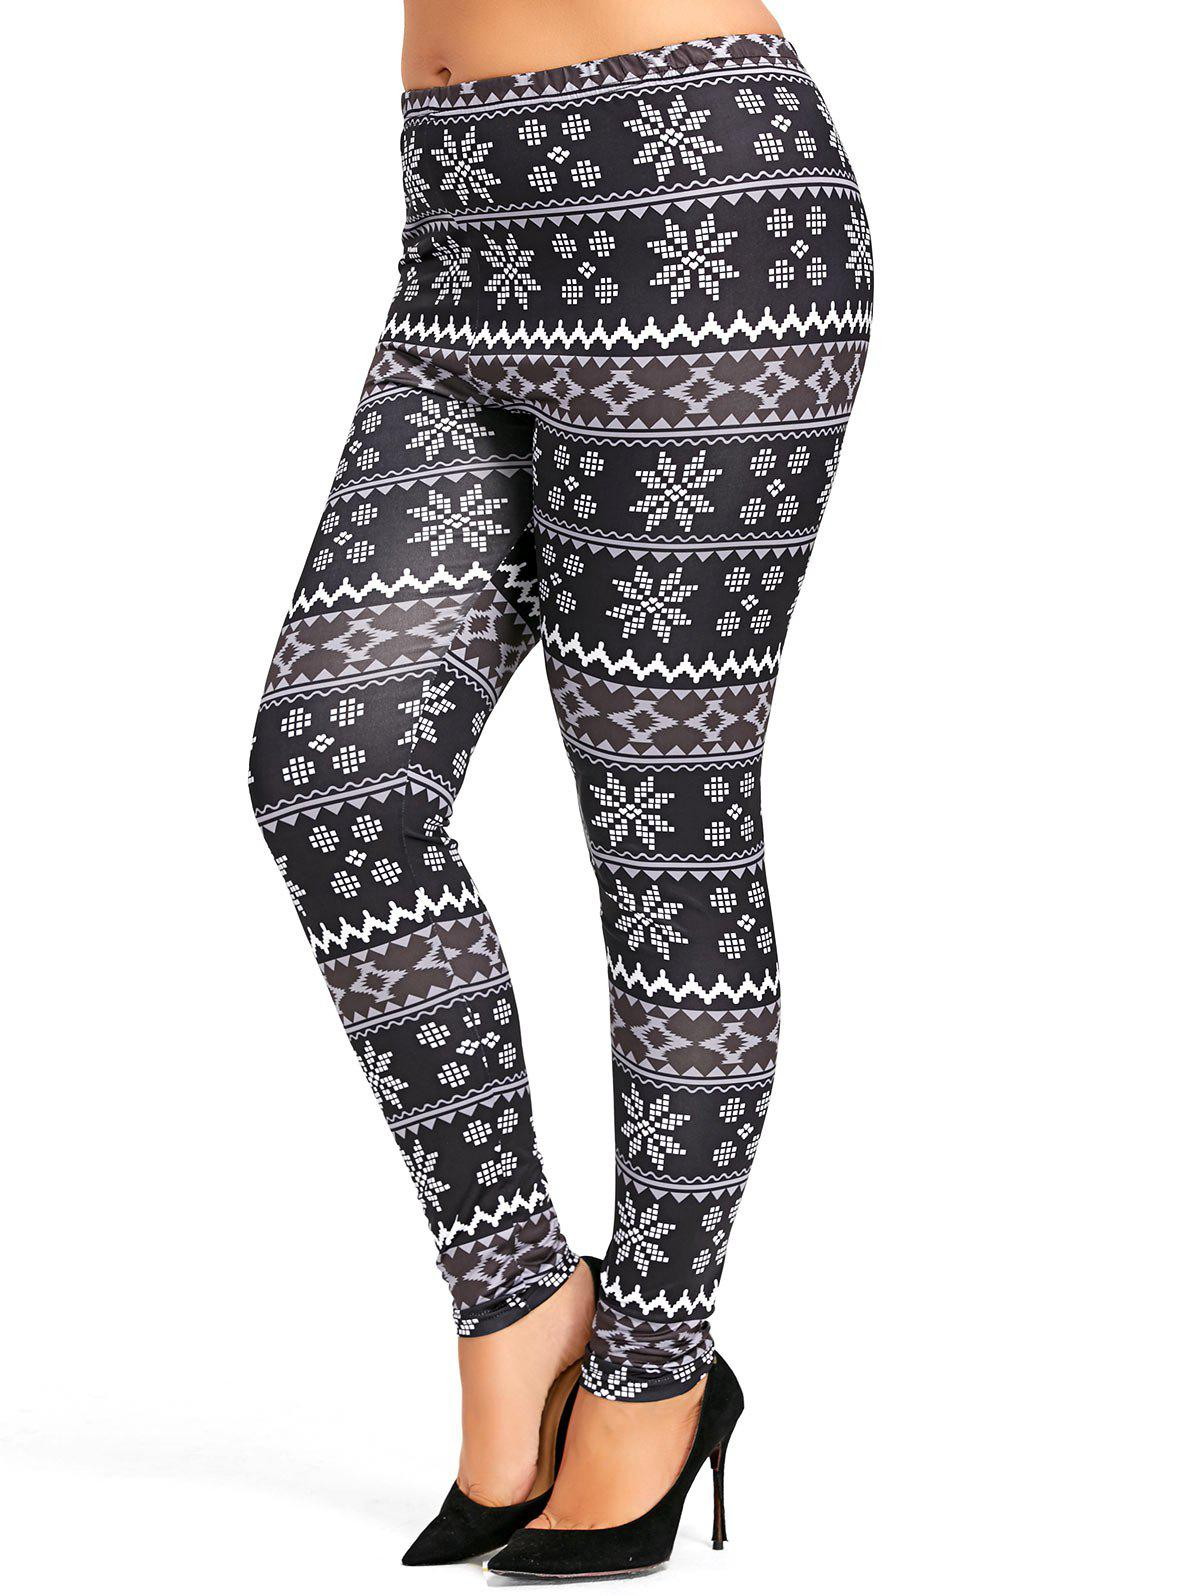 Plus Size High Waisted Snowflake Christmas LegggingsWOMEN<br><br>Size: 3XL; Color: BLACK; Style: Casual; Length: Normal; Material: Cotton,Spandex; Fit Type: Skinny; Waist Type: High; Closure Type: Elastic Waist; Front Style: Flat; Pattern Type: Others; Pant Style: Pencil Pants; With Belt: No; Weight: 0.3100kg; Package Contents: 1 x Leggings;